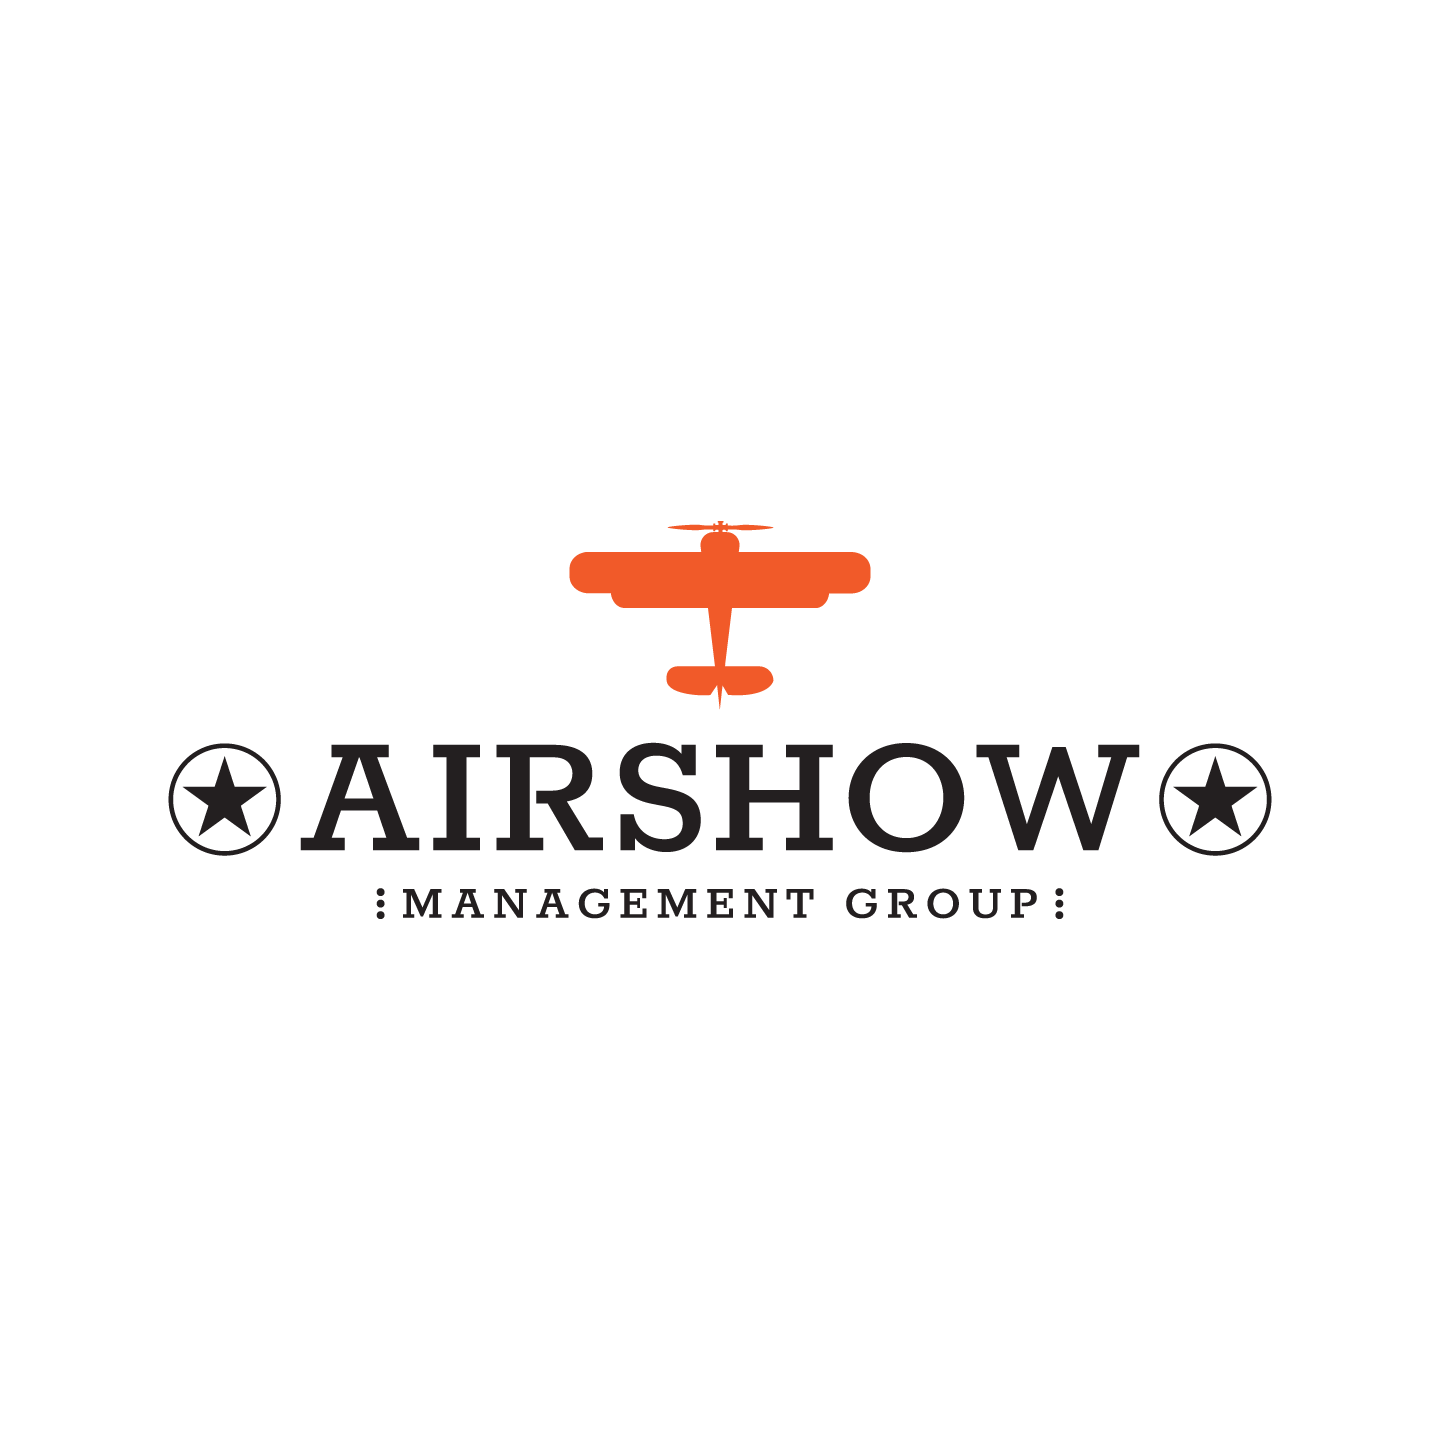 Airshow Management Group Glendale